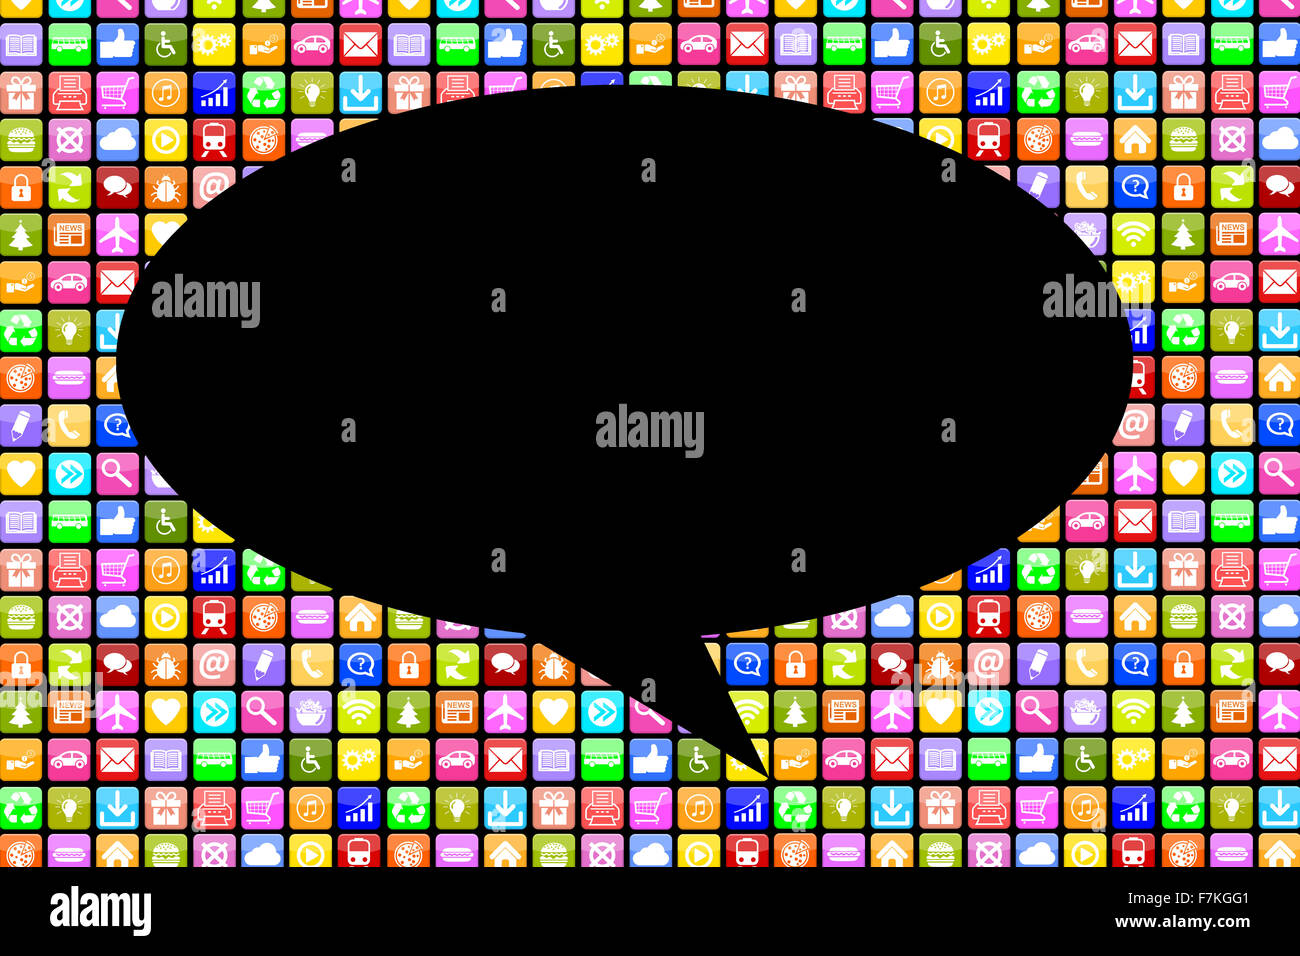 Application Apps App social media network chat chatting communication on mobile or smart phone - Stock Image